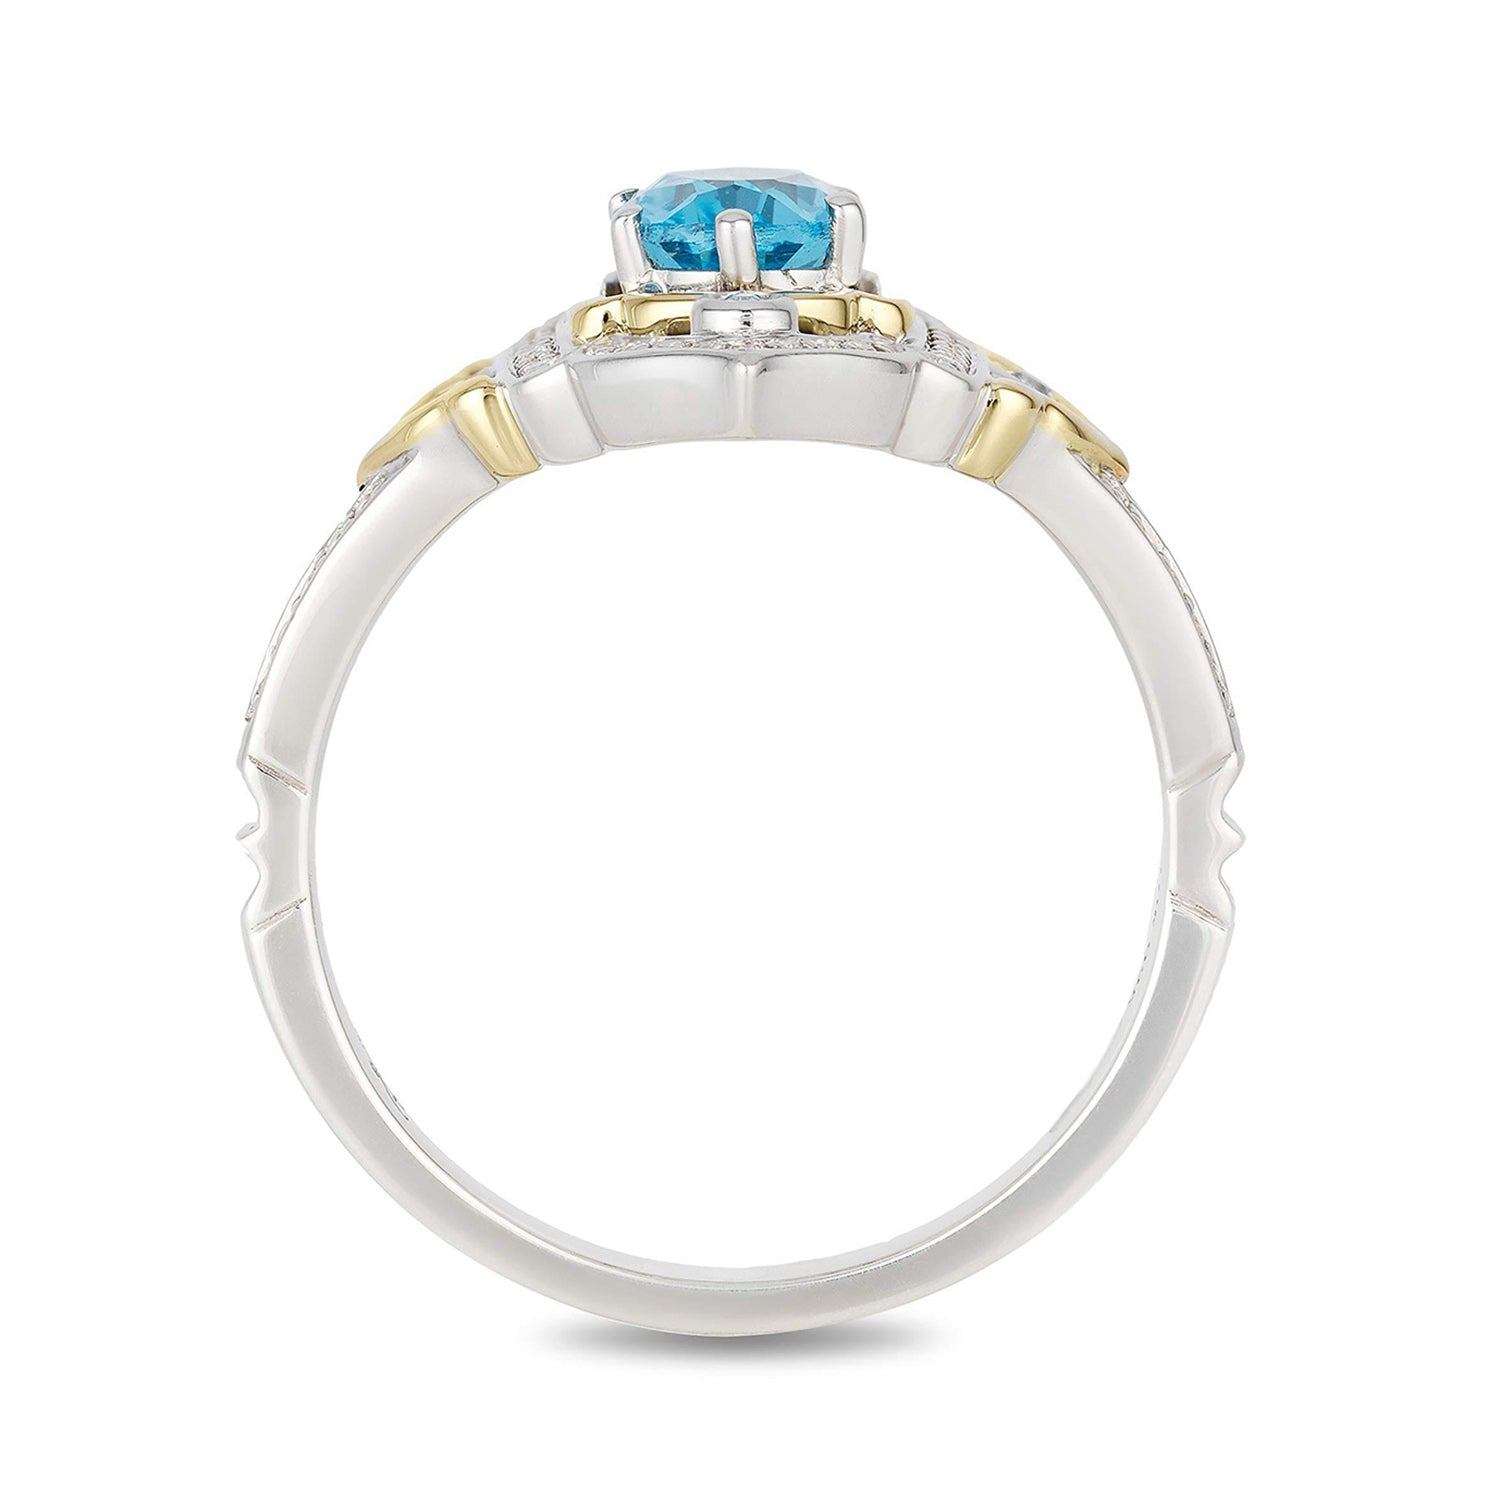 enchanted_disney-jasmine_ring-10k_yellow_gold_and_sterling_silver_1/5CTTW_3